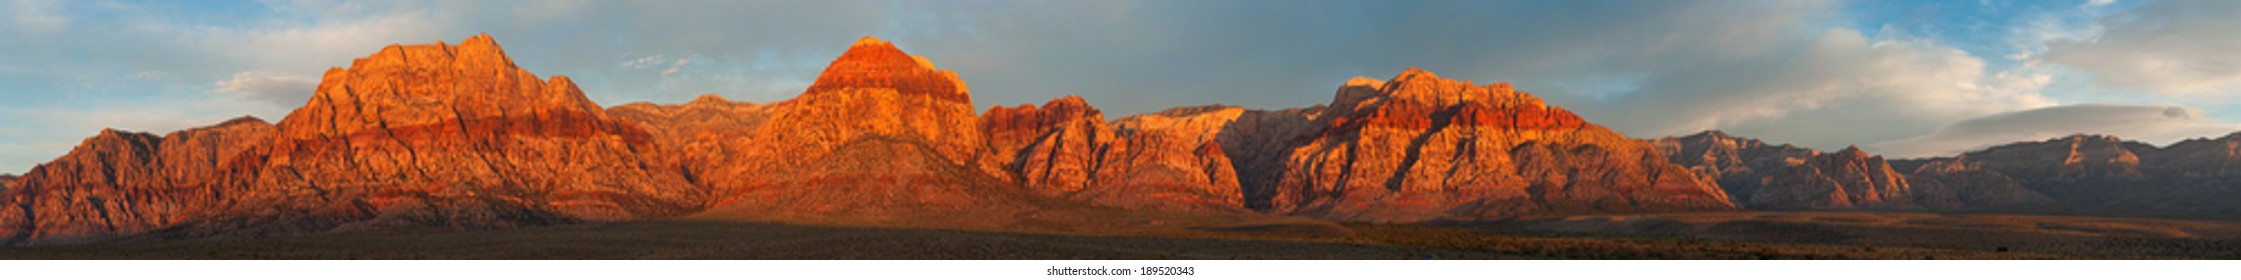 Spectacular sunrise over a mountain range in Red Rock State Park near Las Vegas, Nevada.